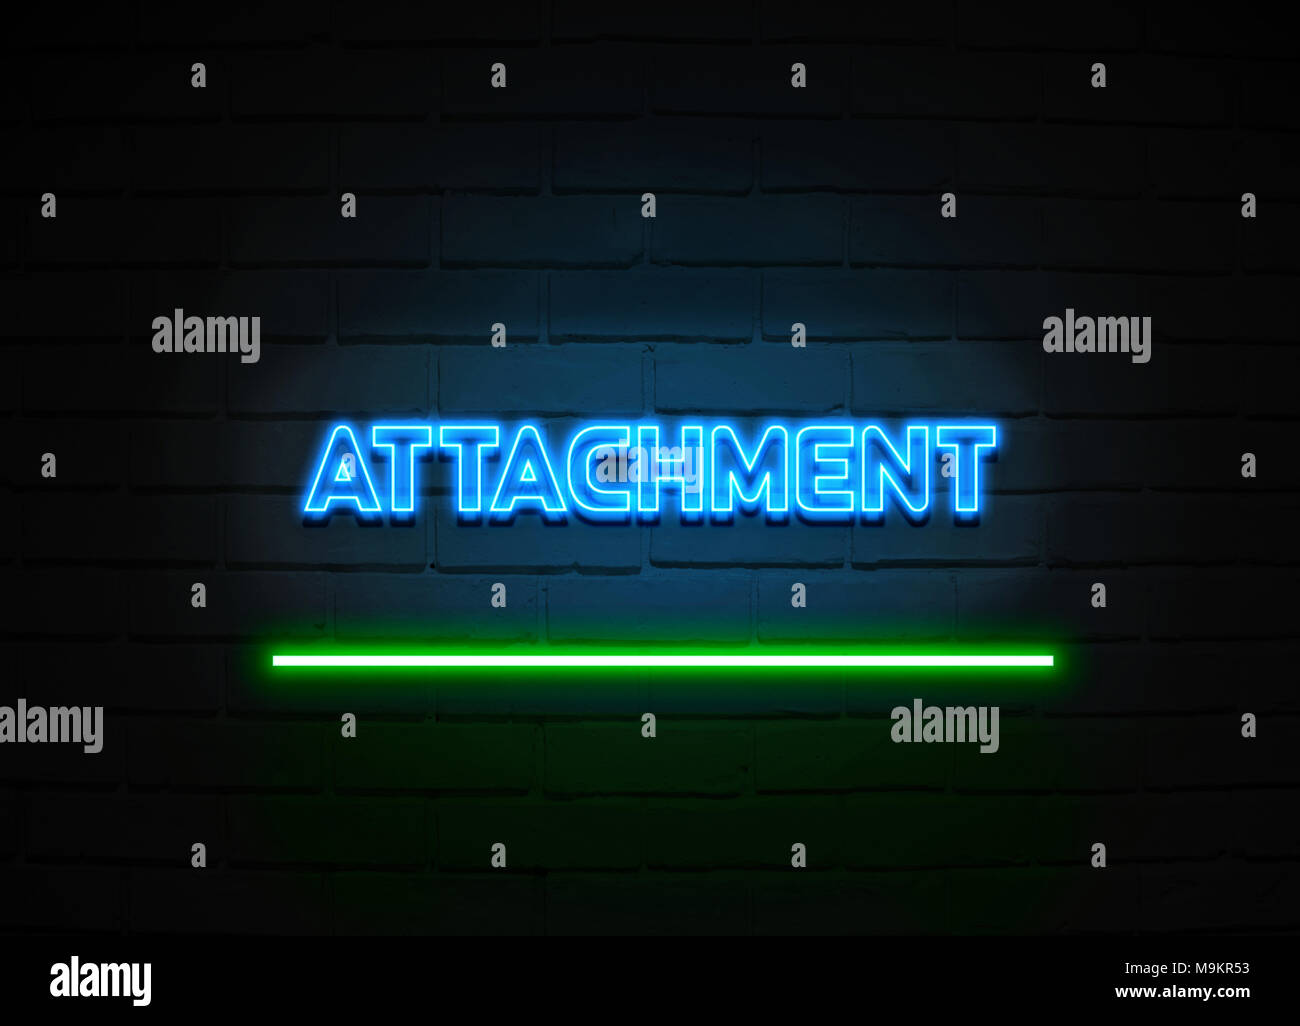 Attachment neon sign - Glowing Neon Sign on brickwall wall - 3D rendered royalty free stock illustration. - Stock Image